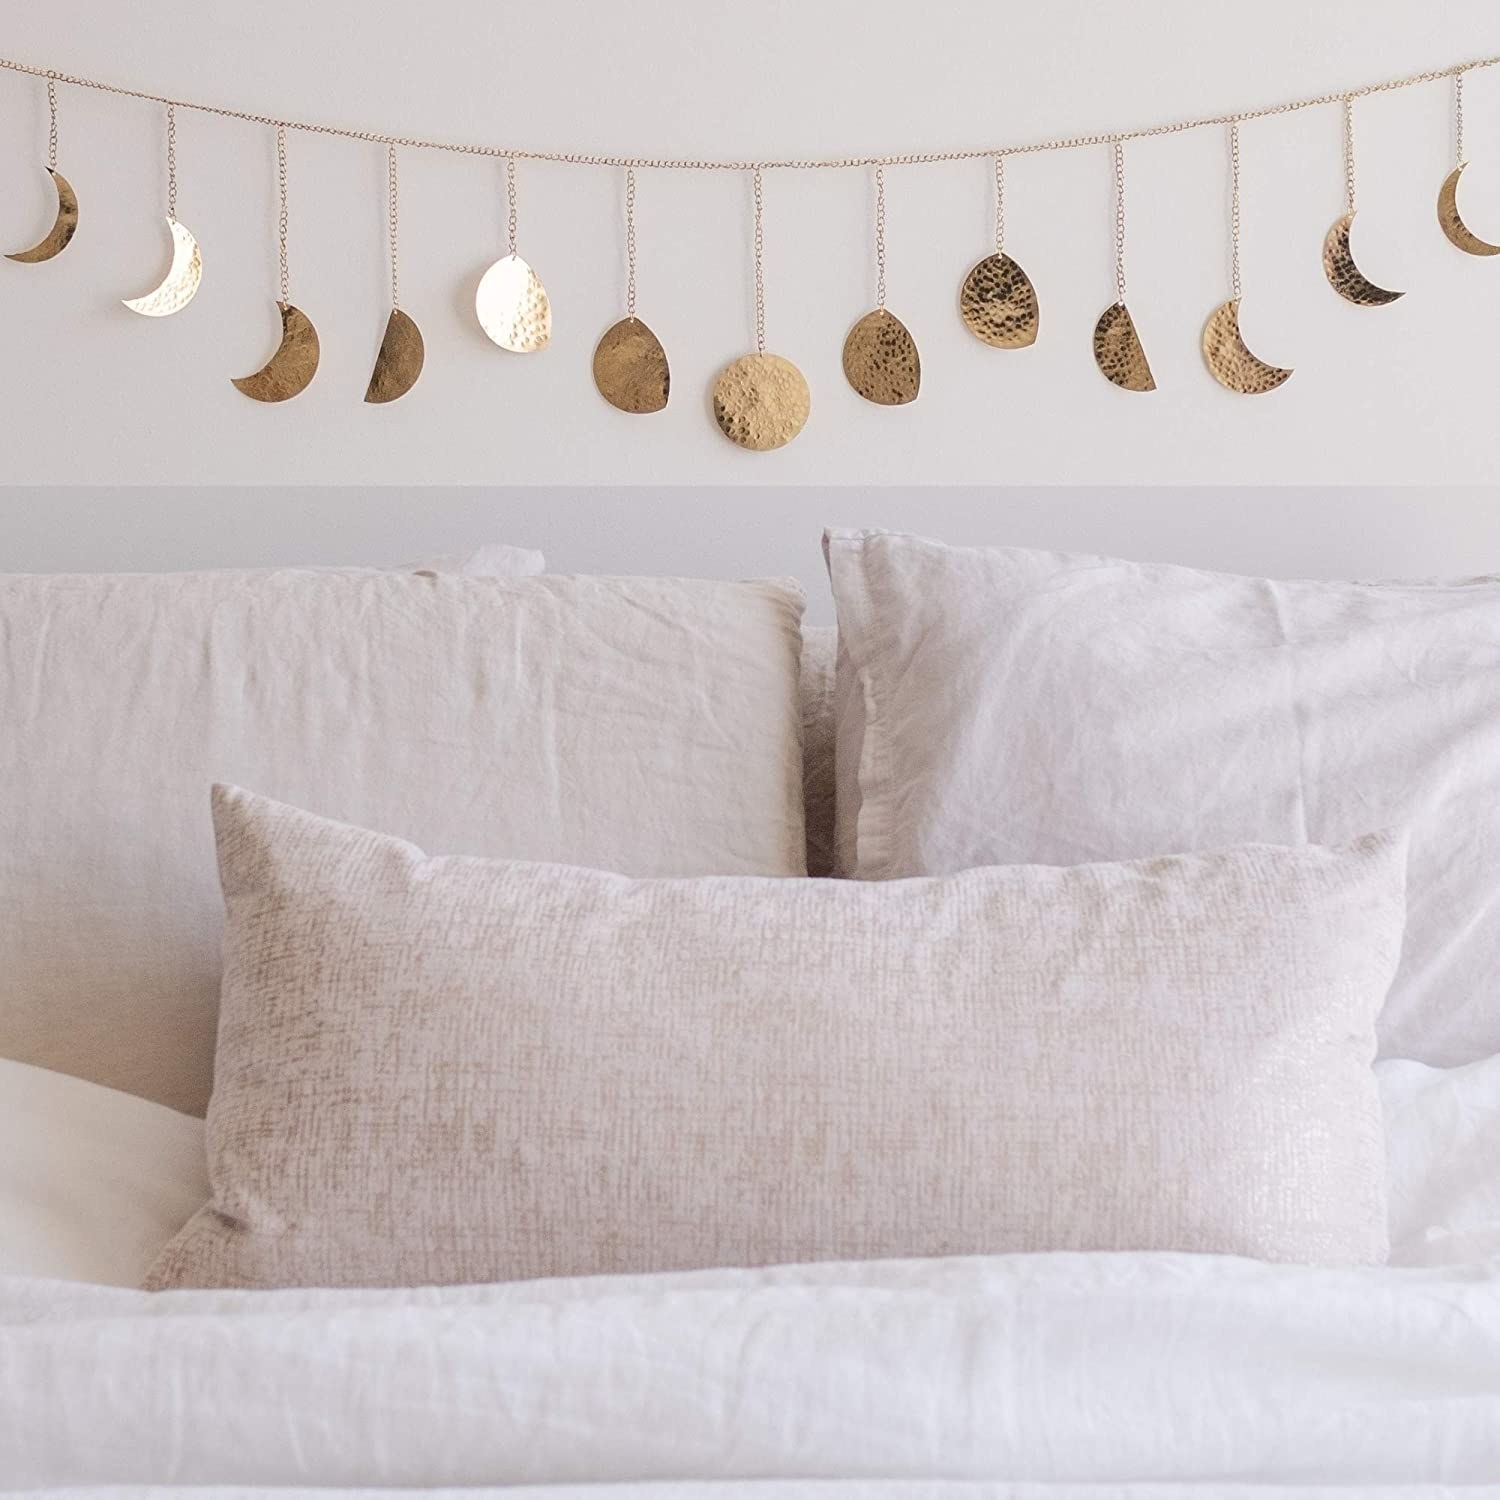 A gold moon phase garland over a bed with cream bedding